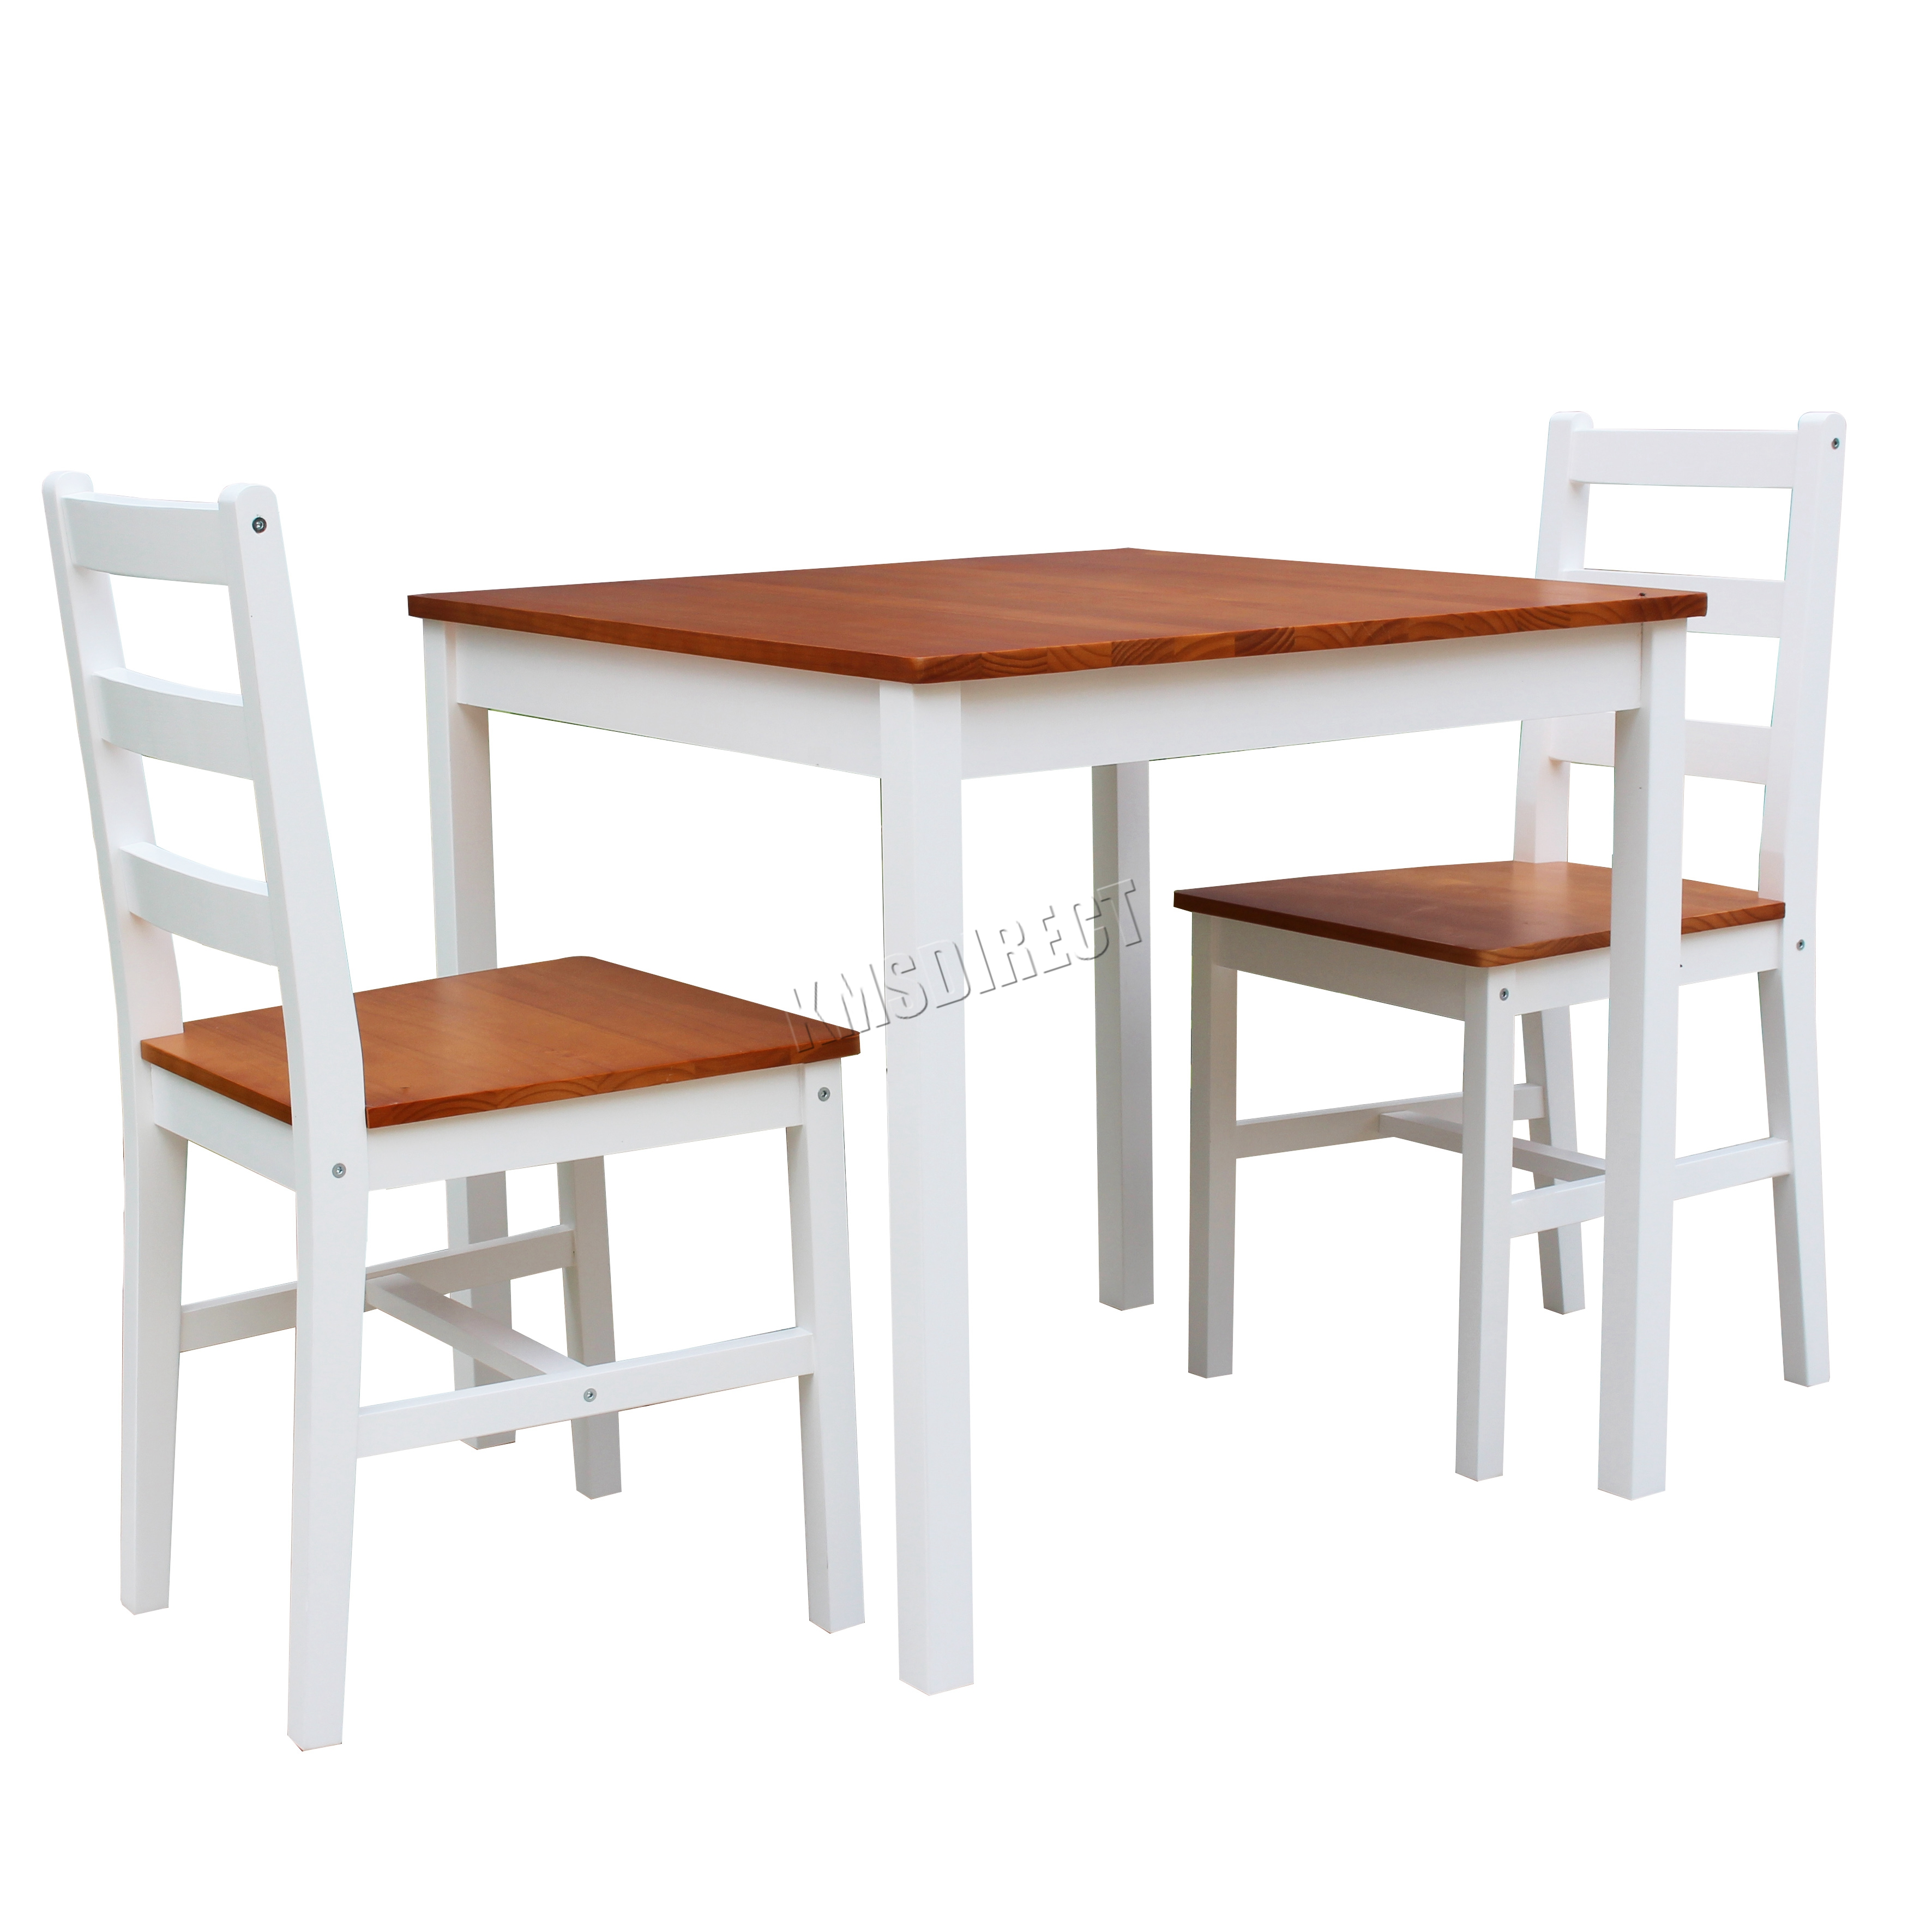 kitchen wood furniture westwood solid pine wood dining table with 2 chairs set 13880